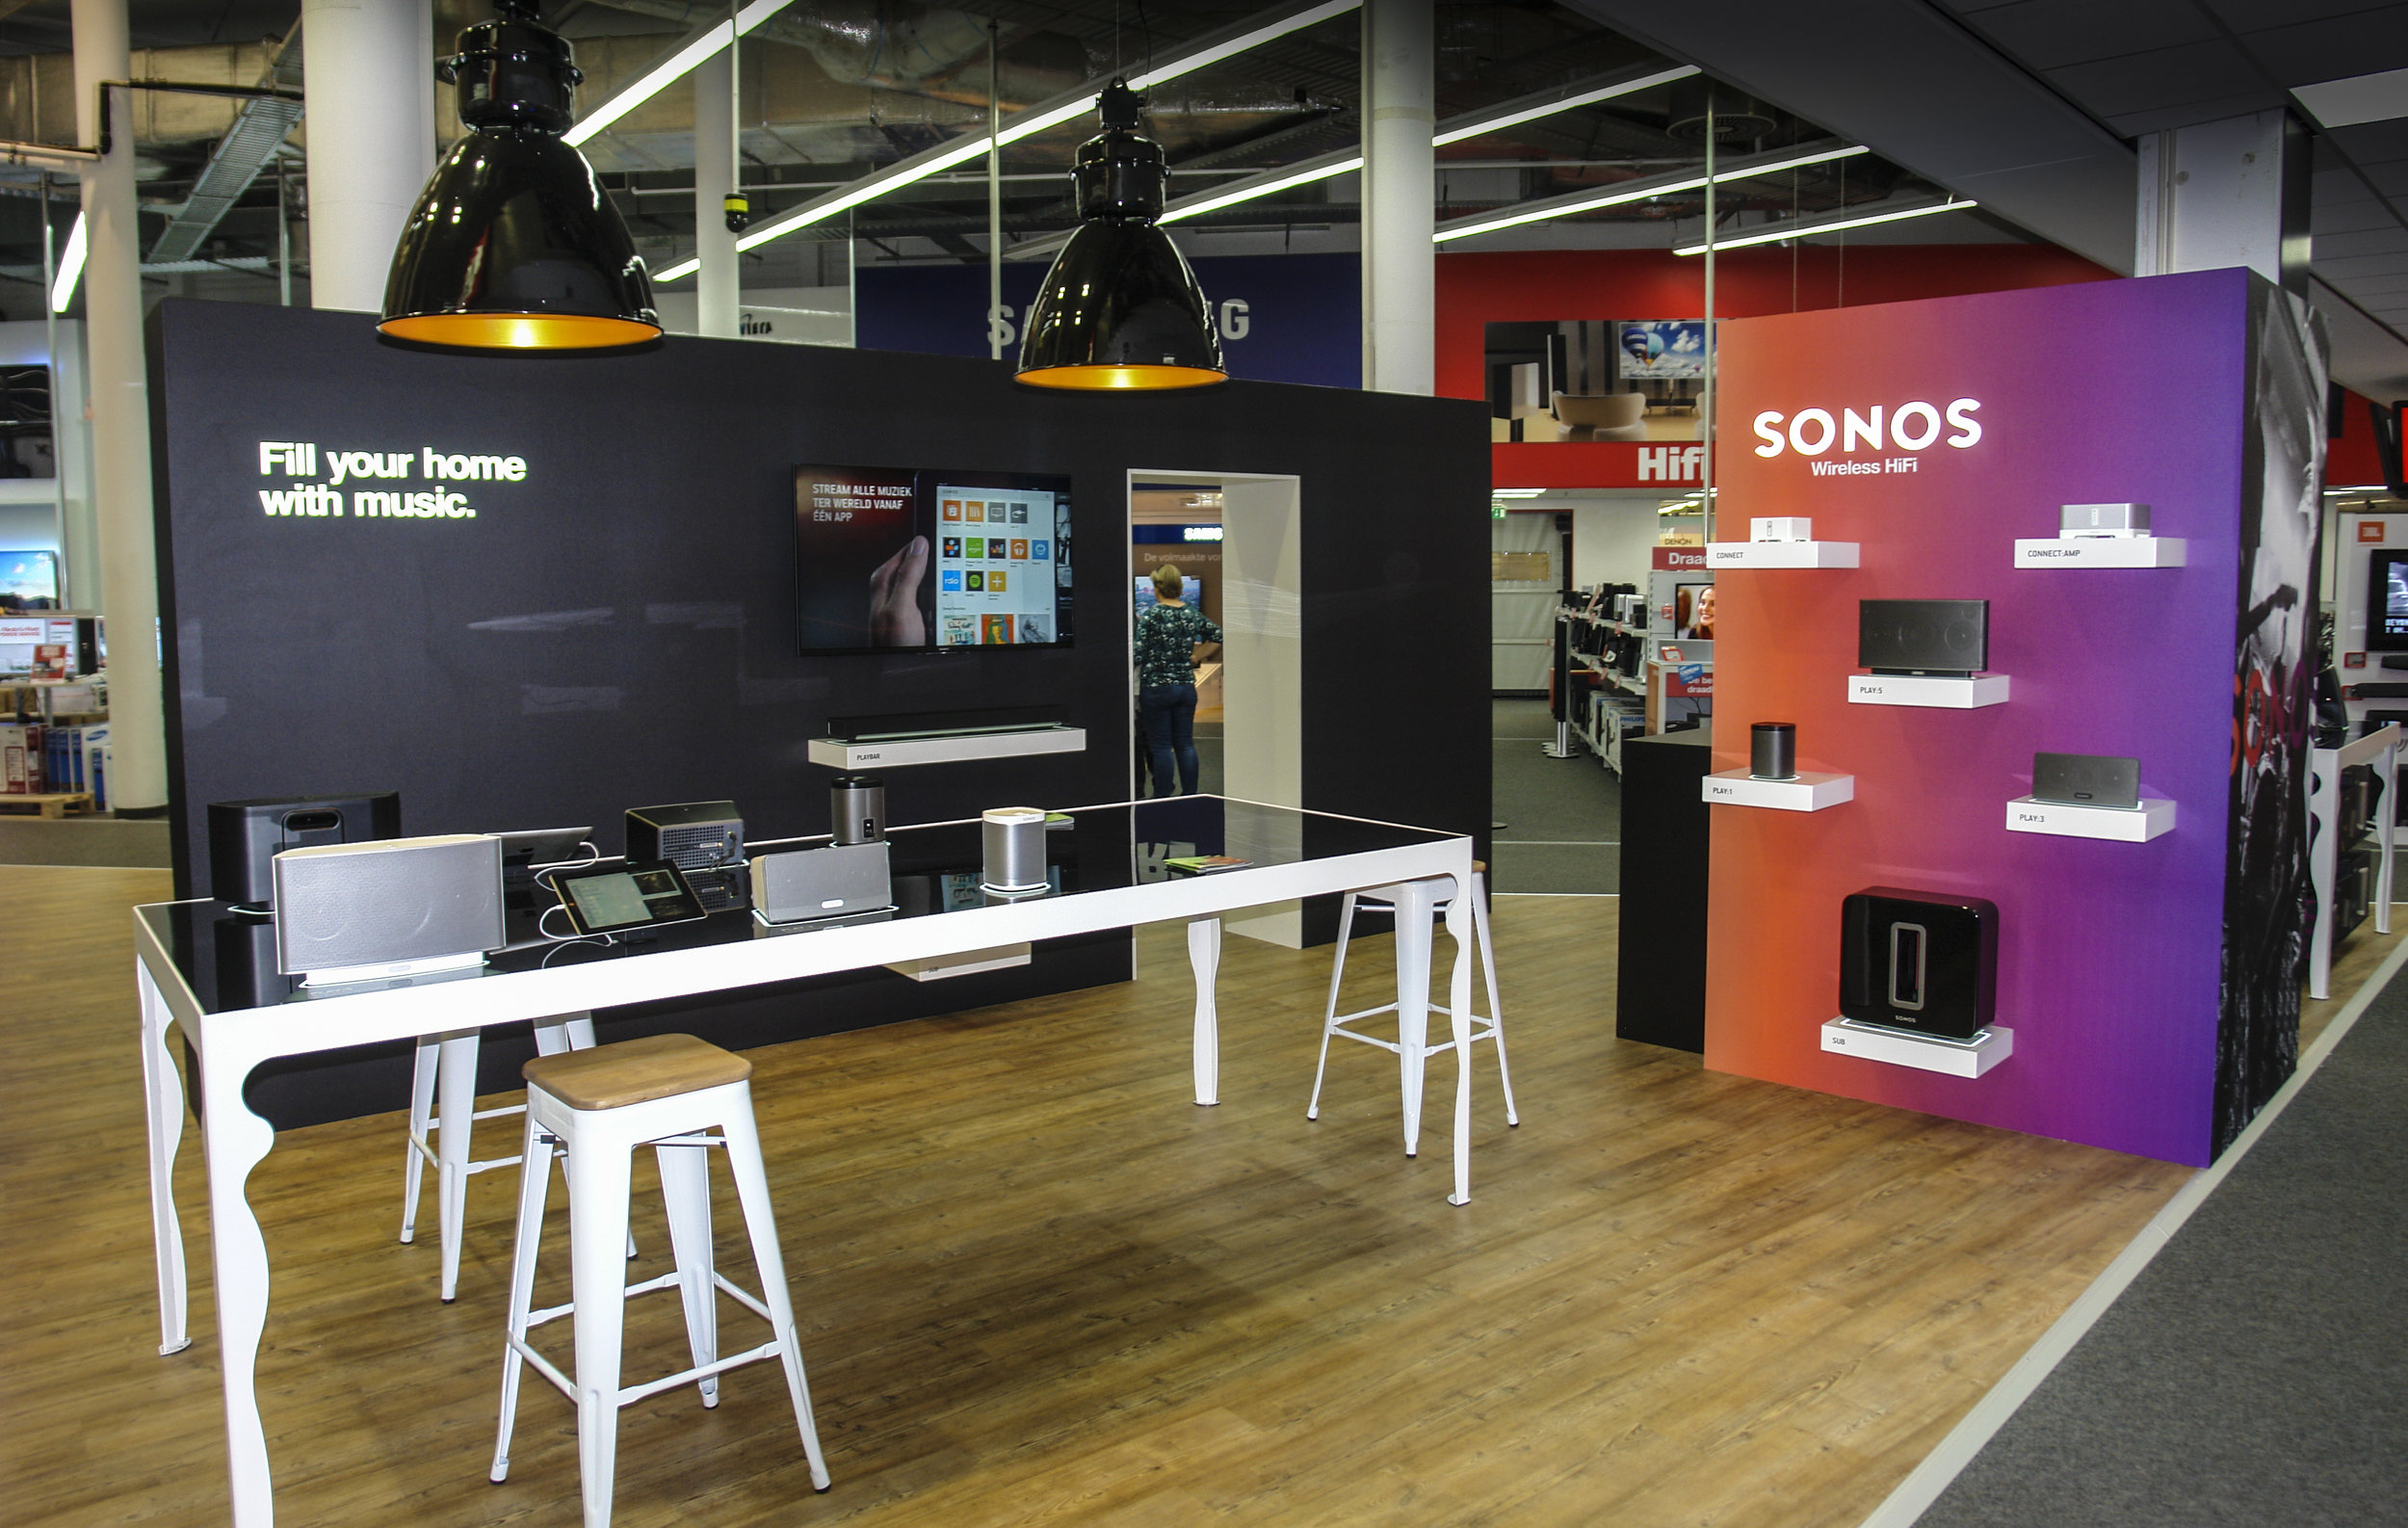 Promotioneel sonos display 4.jpg